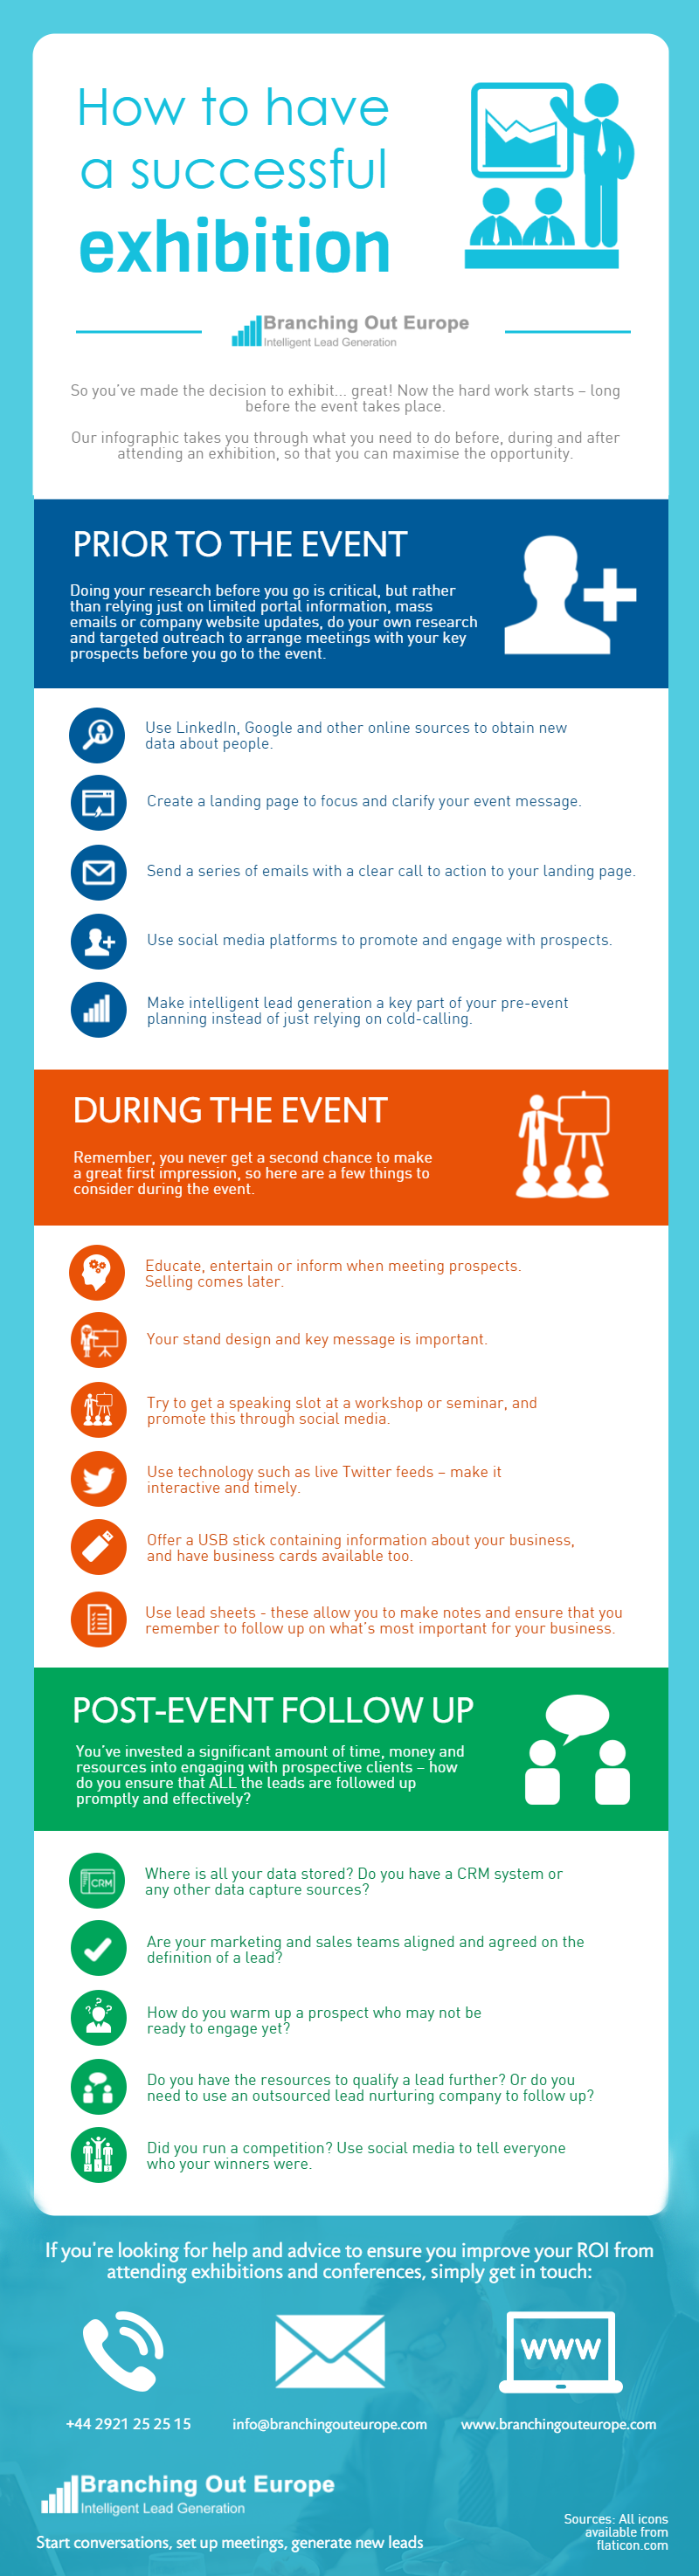 how-to-have-a-successful-exhibition-infographic